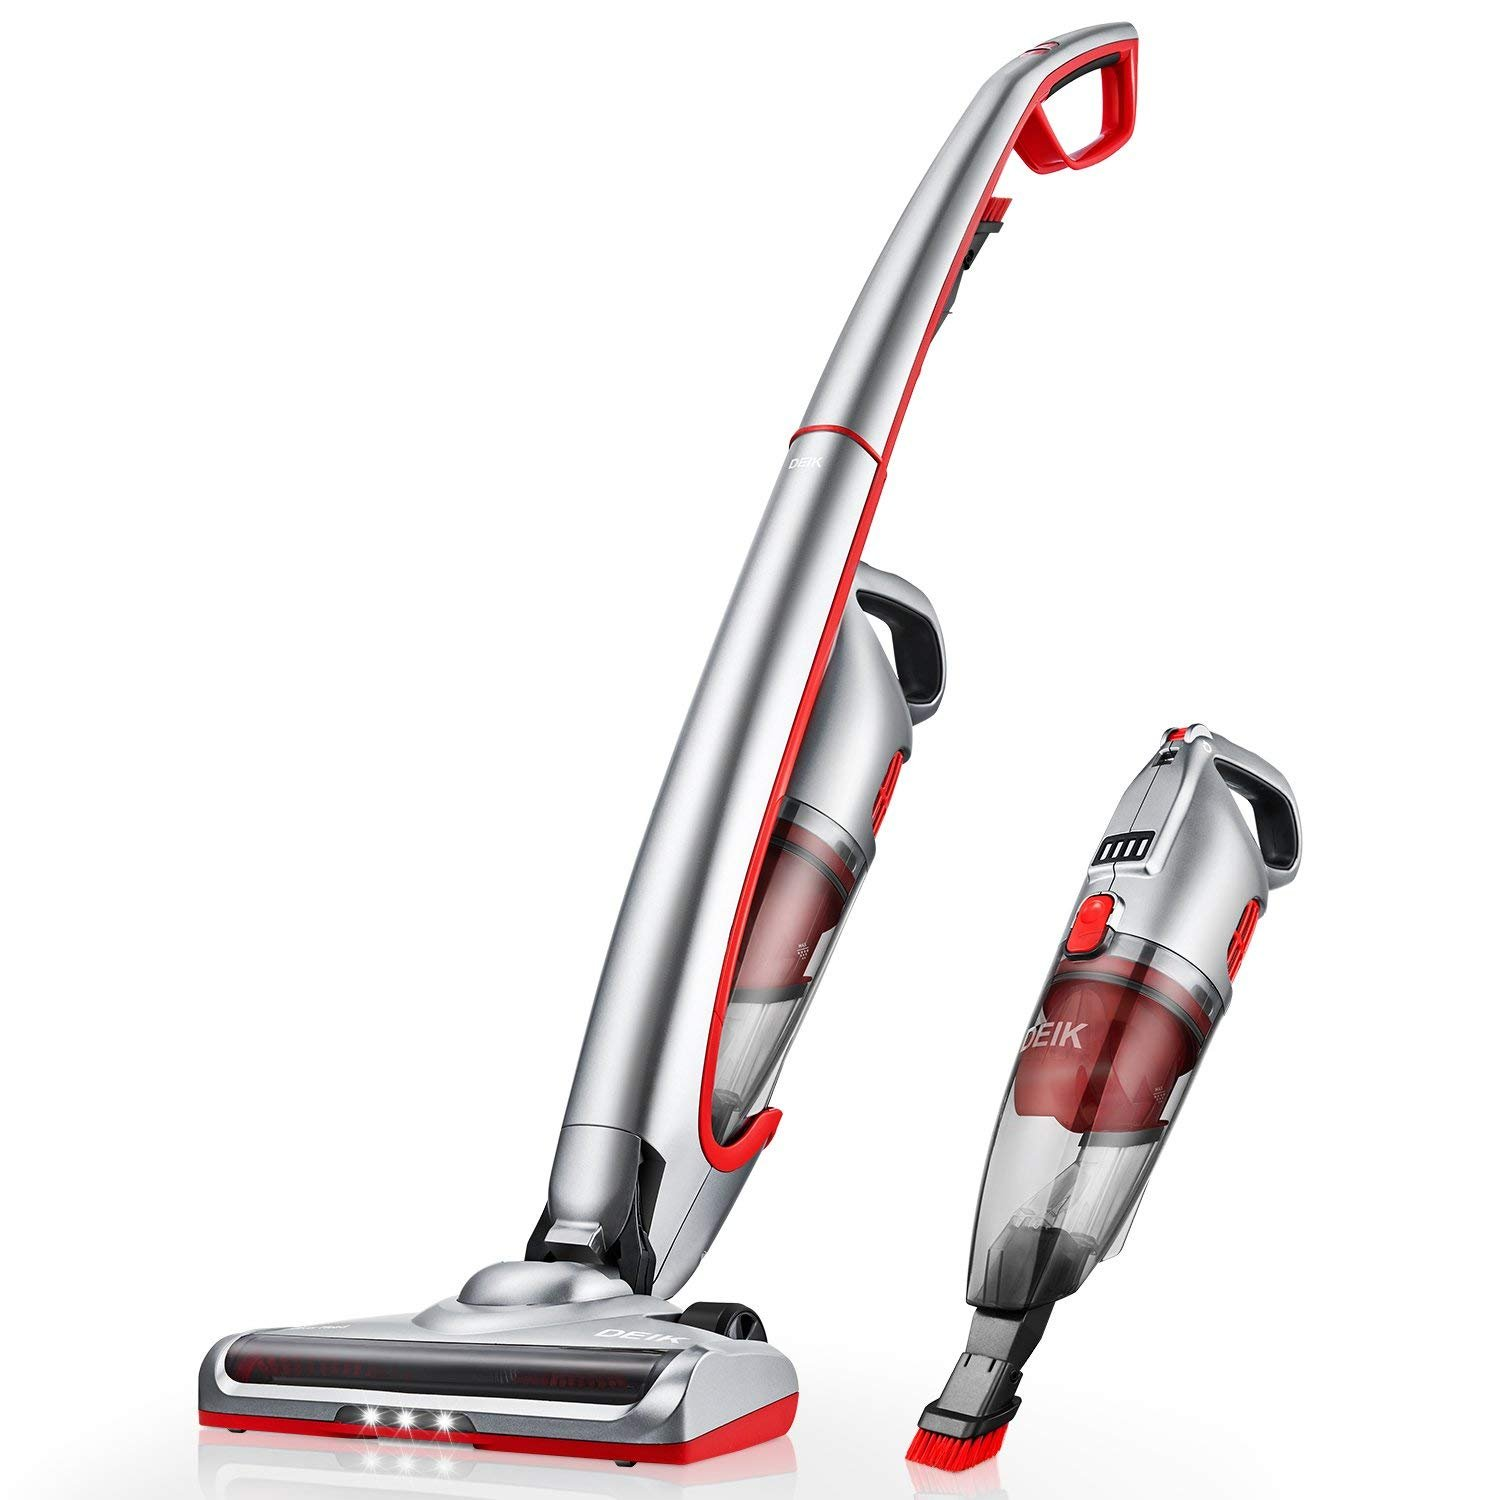 Cordless Vacuum, Deik Stick Vacuum Cleaner, Lightweight 2 in 1 Handheld Vacuum with High-Power 2200mAh Lithium-Ion Rechargeable Battery, Suitable for Pet Hair, Ultra Wide Brush Head & LED Headlight